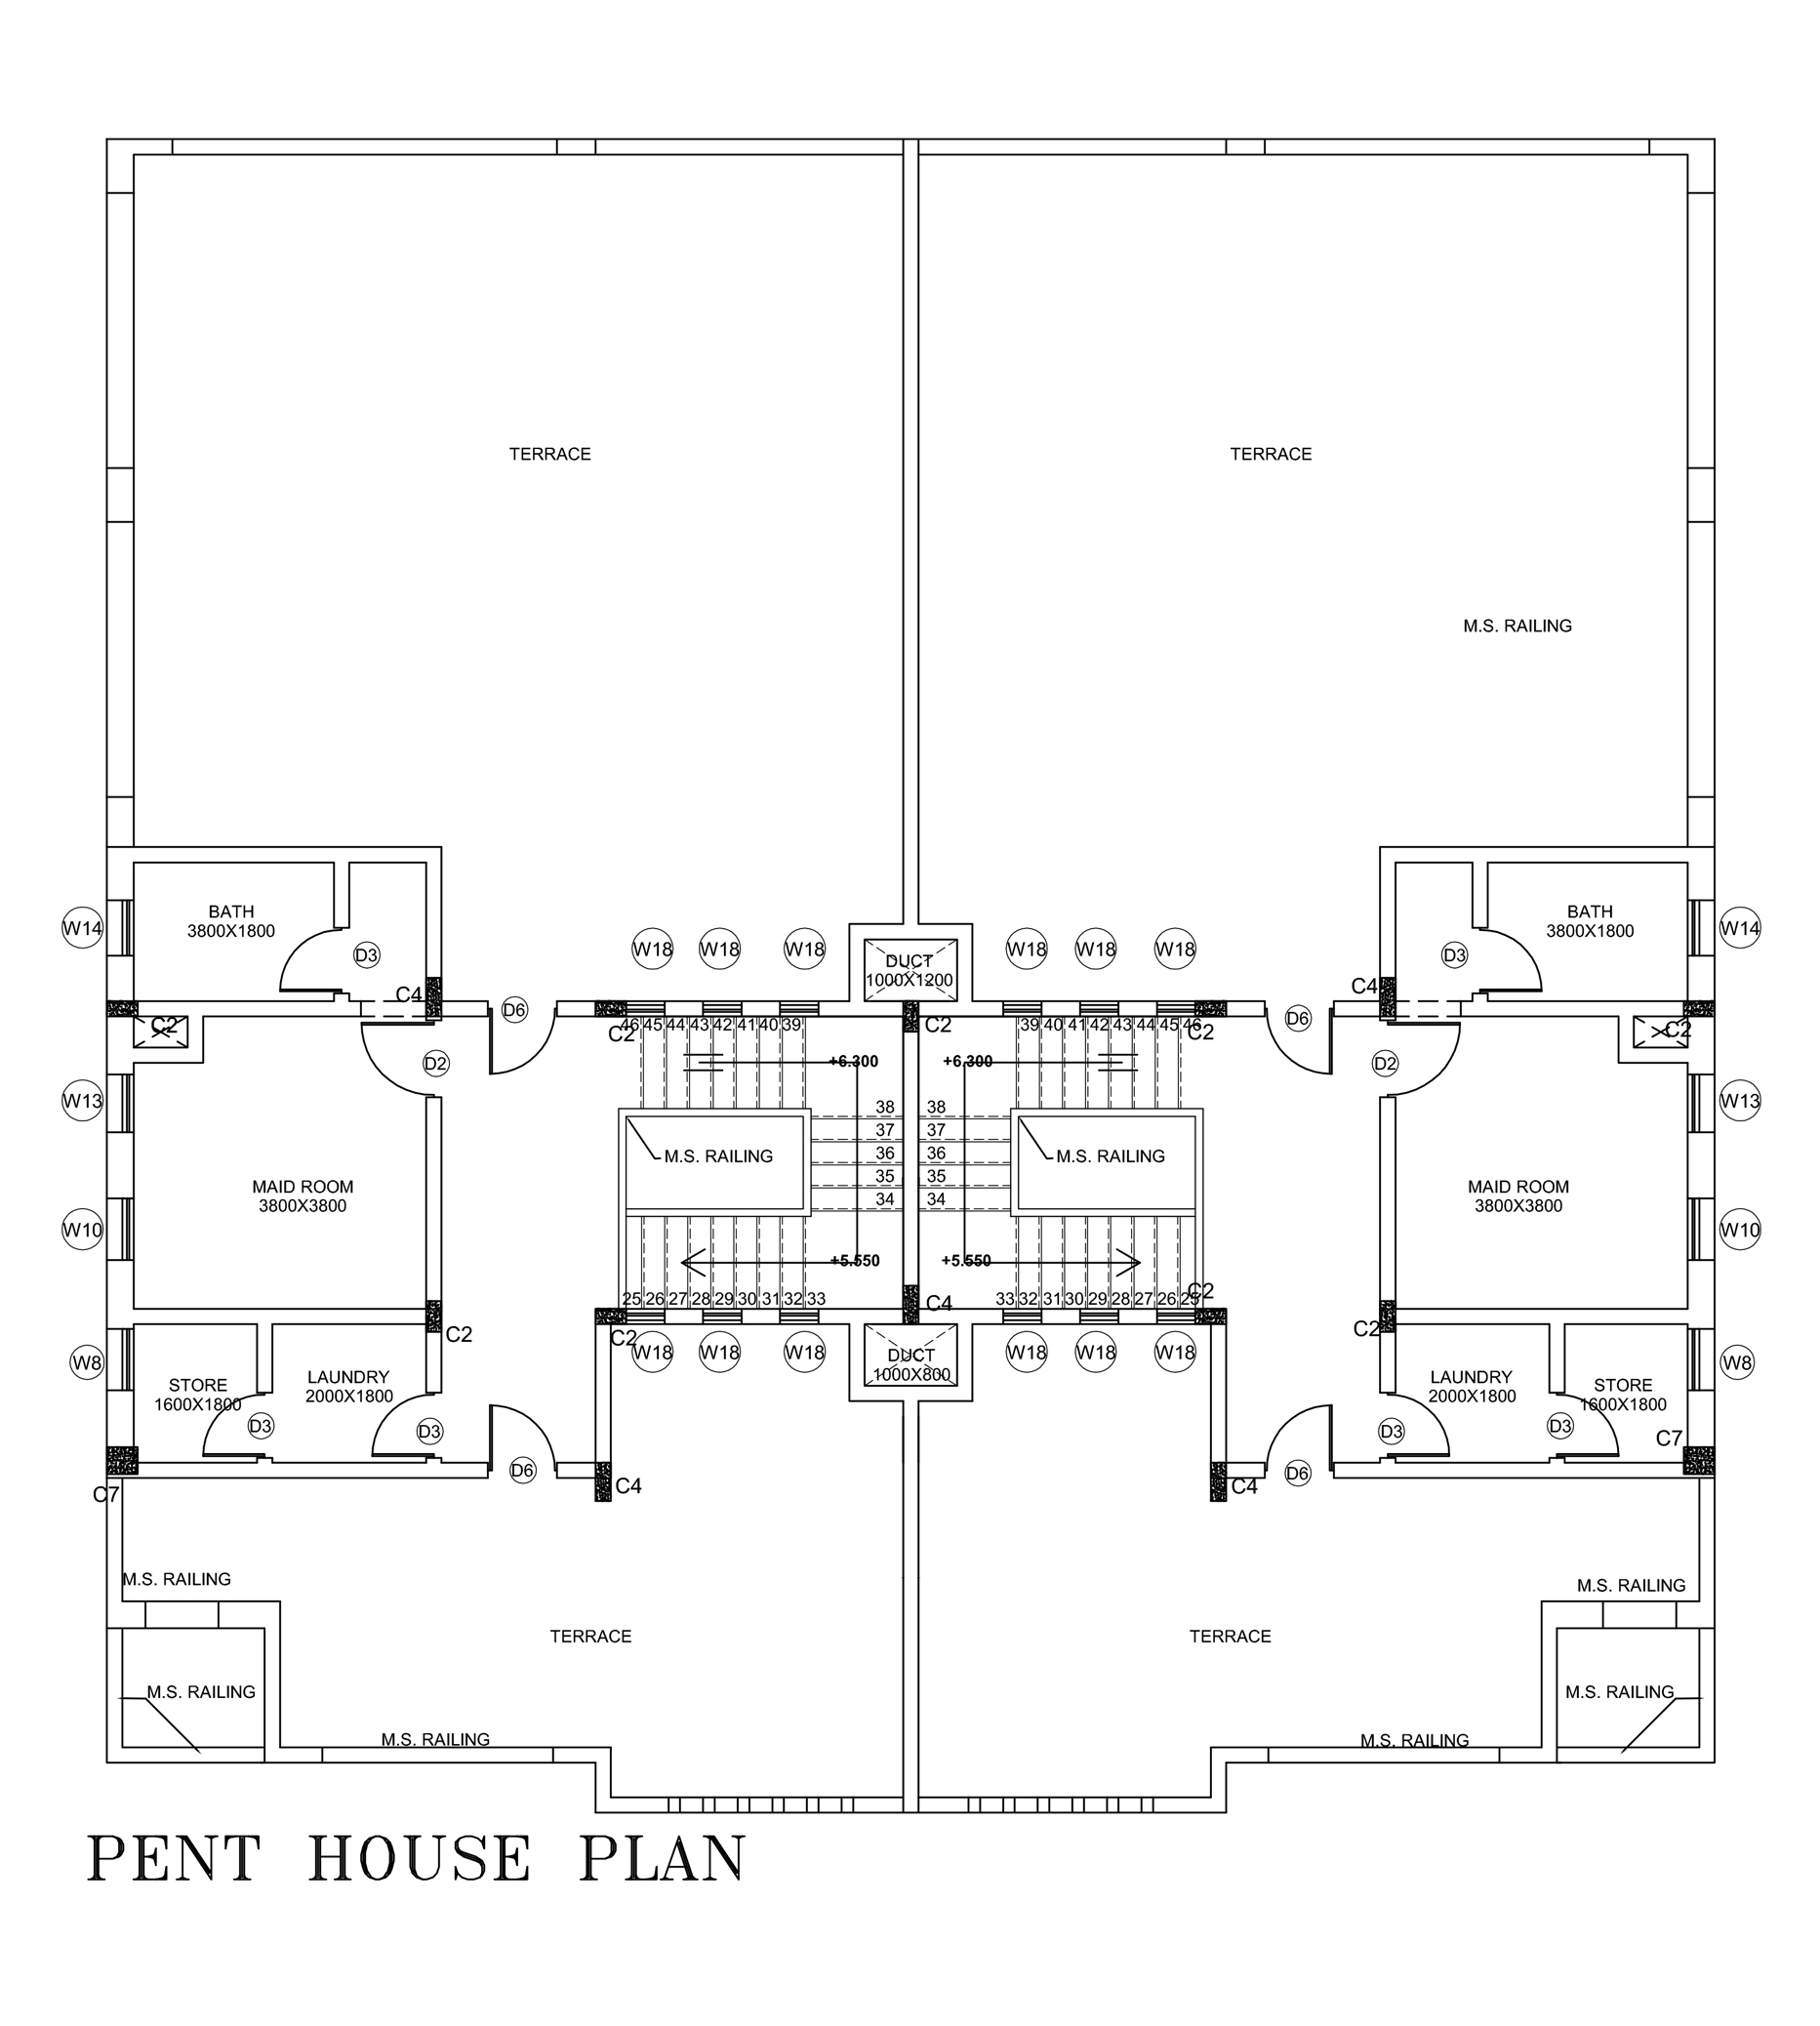 Awesome So You Can Free Download Your Selected Cad Block Or House Plan Using This  Below Link.